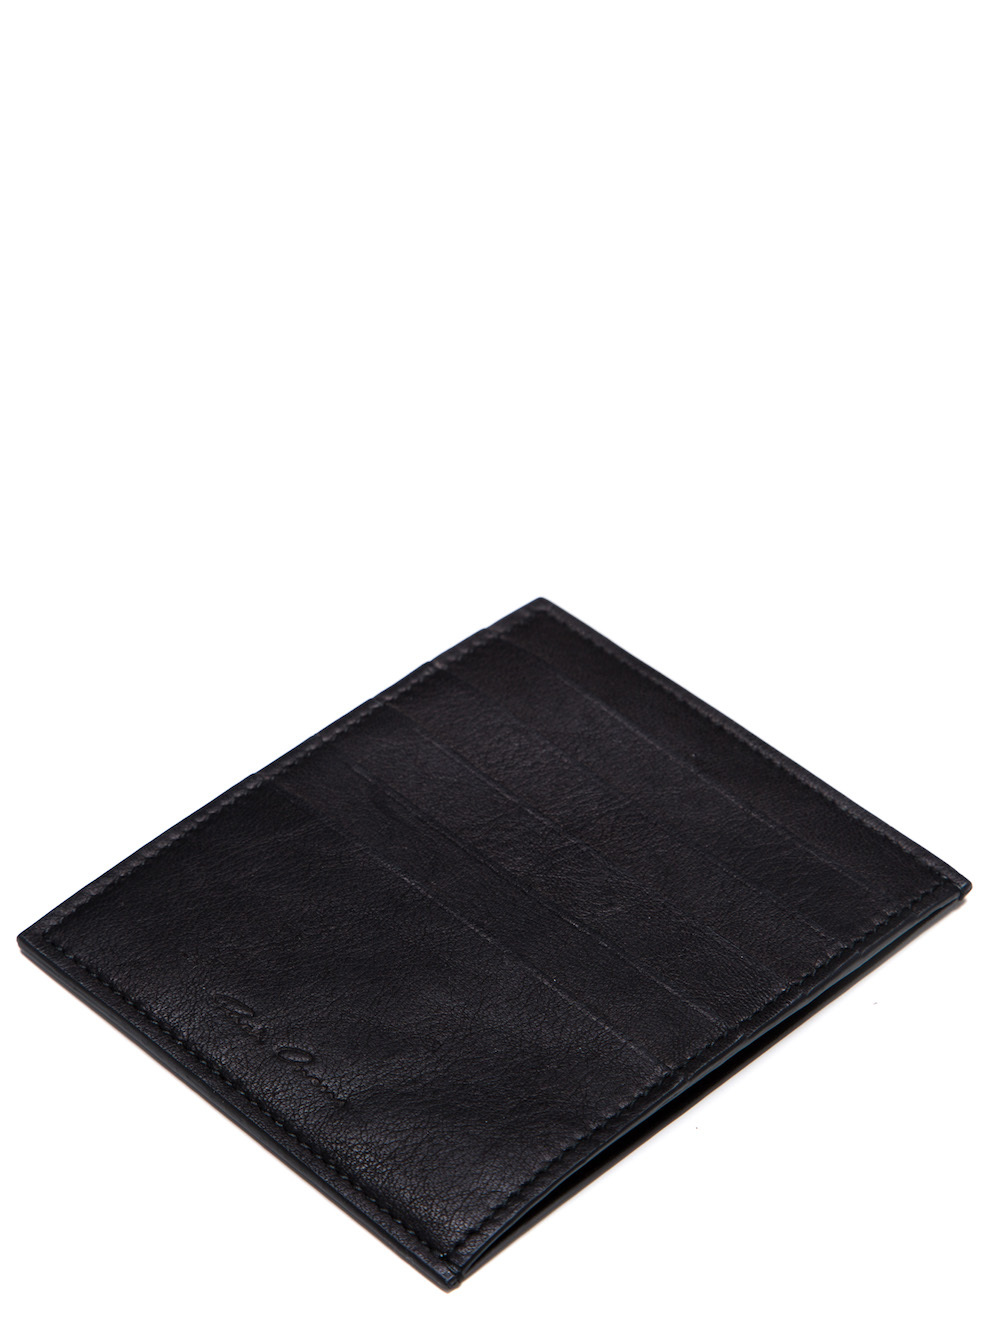 RICK OWENS CREDIT CARD HOLDER IN BLACK CALF LEATHER